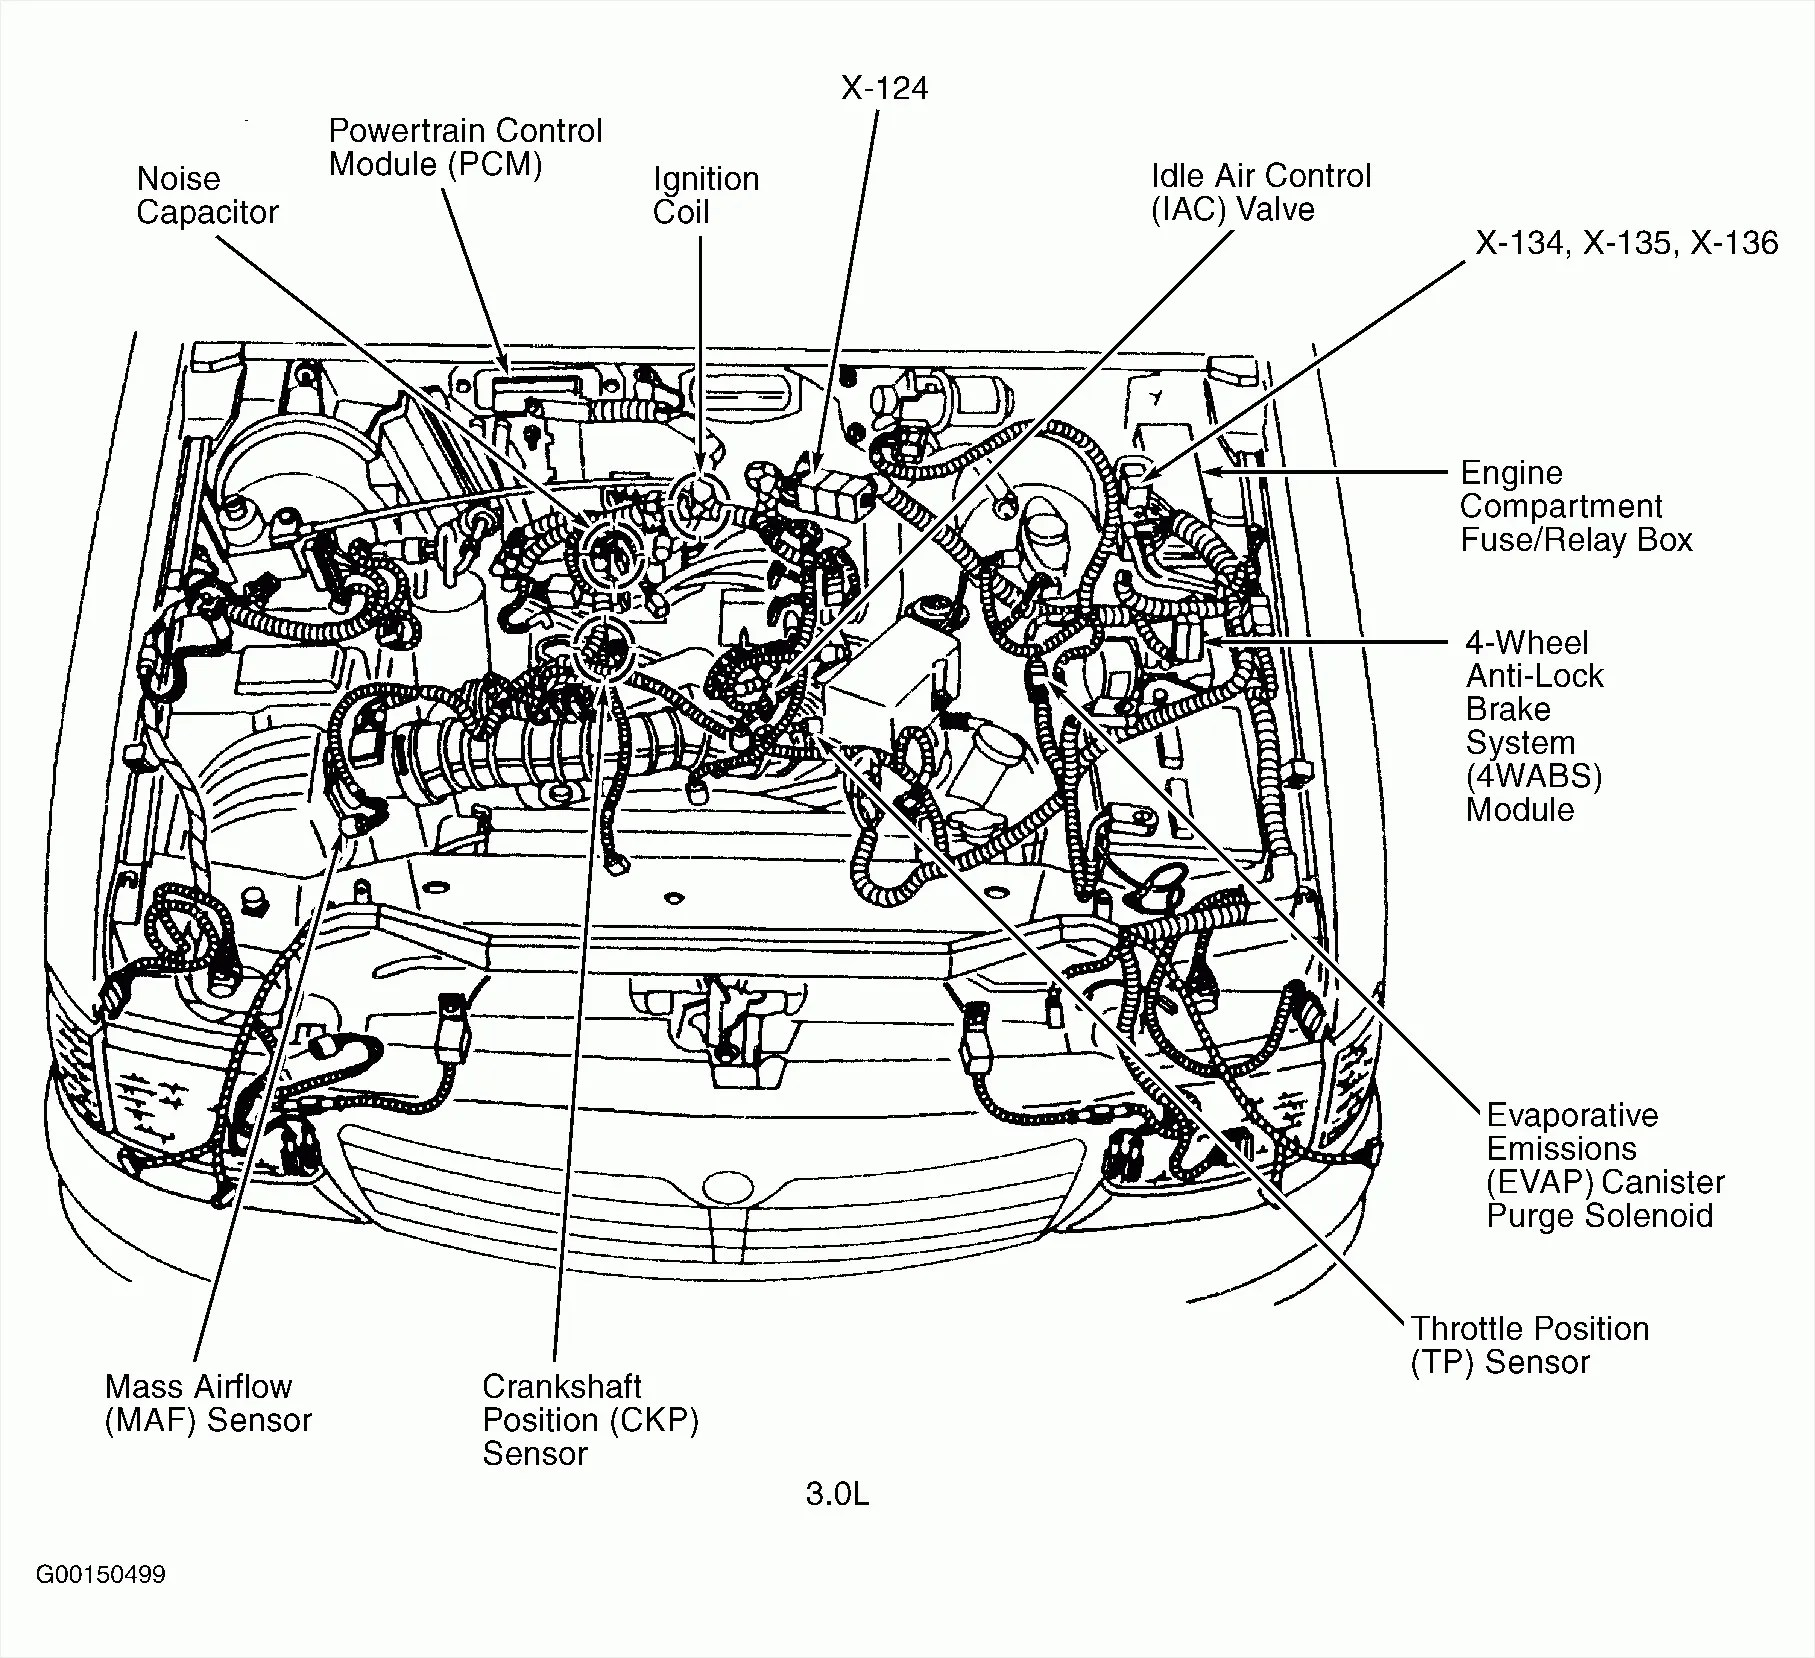 hight resolution of 2006 ford fusion 2 4l engine diagram wiring diagram img ford flex v6 3 0 engine diagram